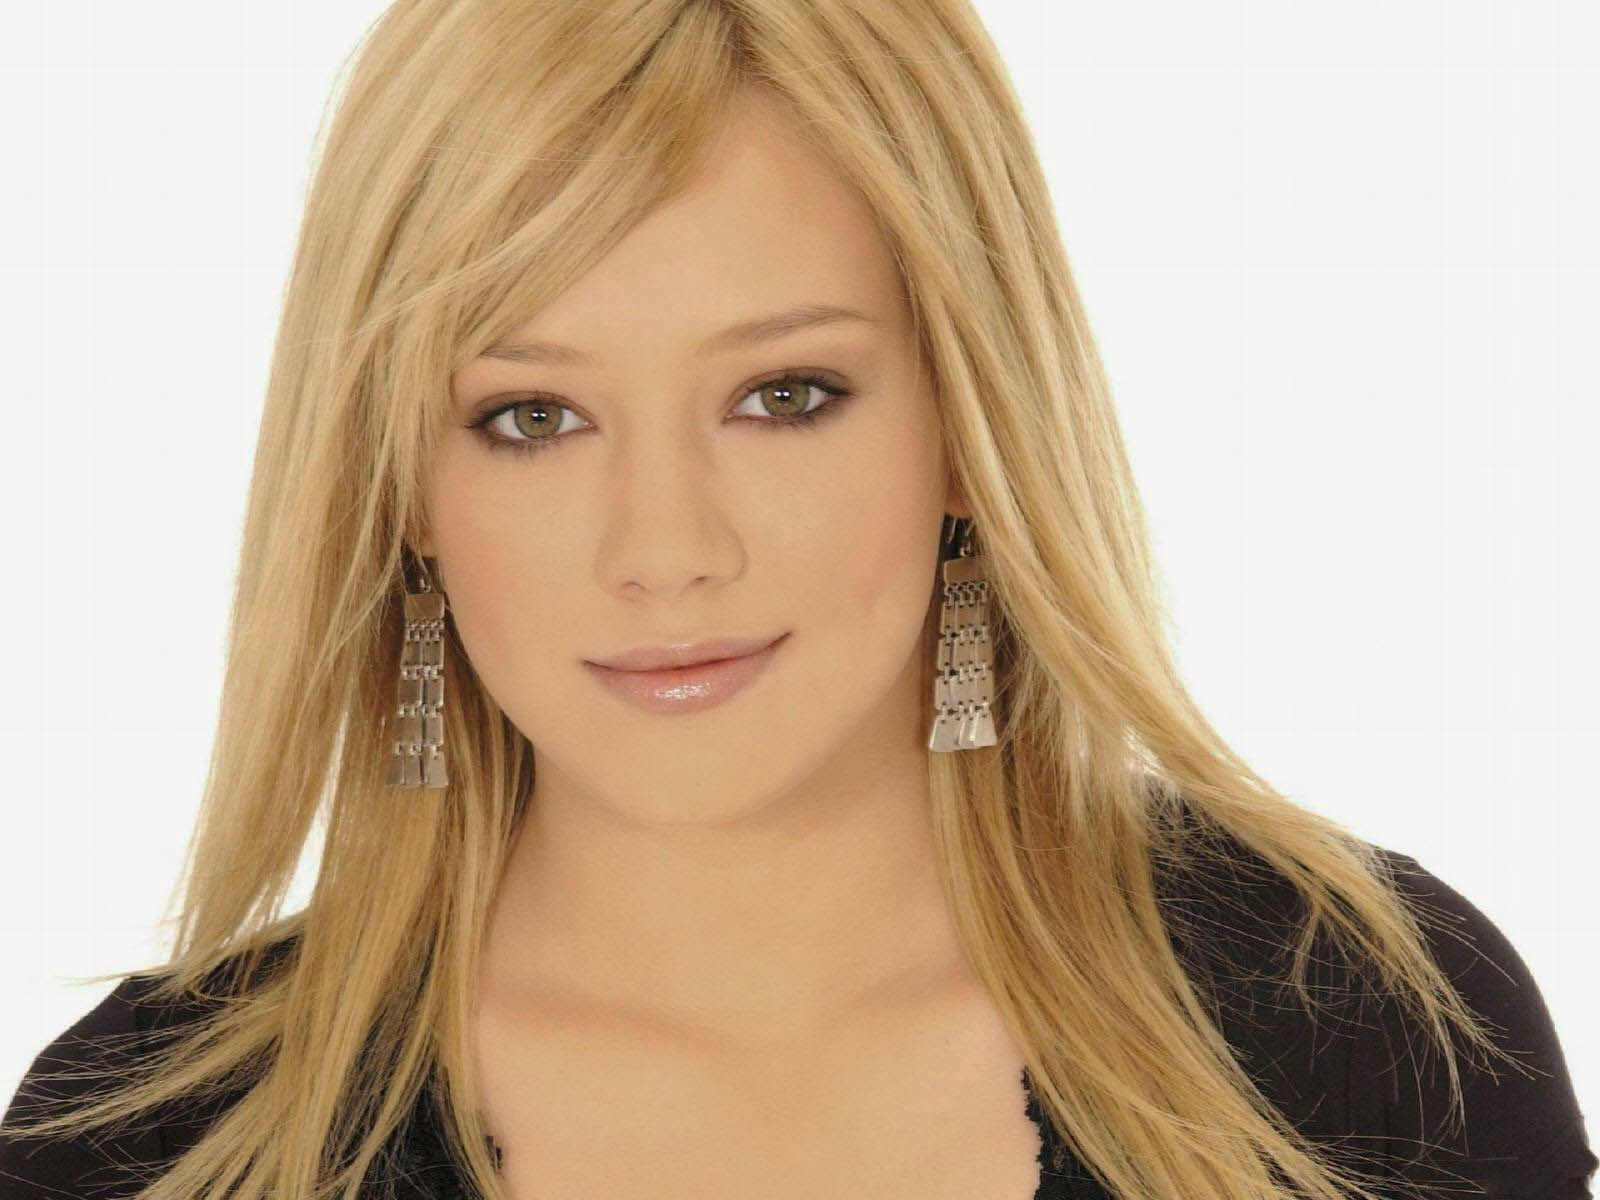 Hilary duff sexy hot hq wallpapers